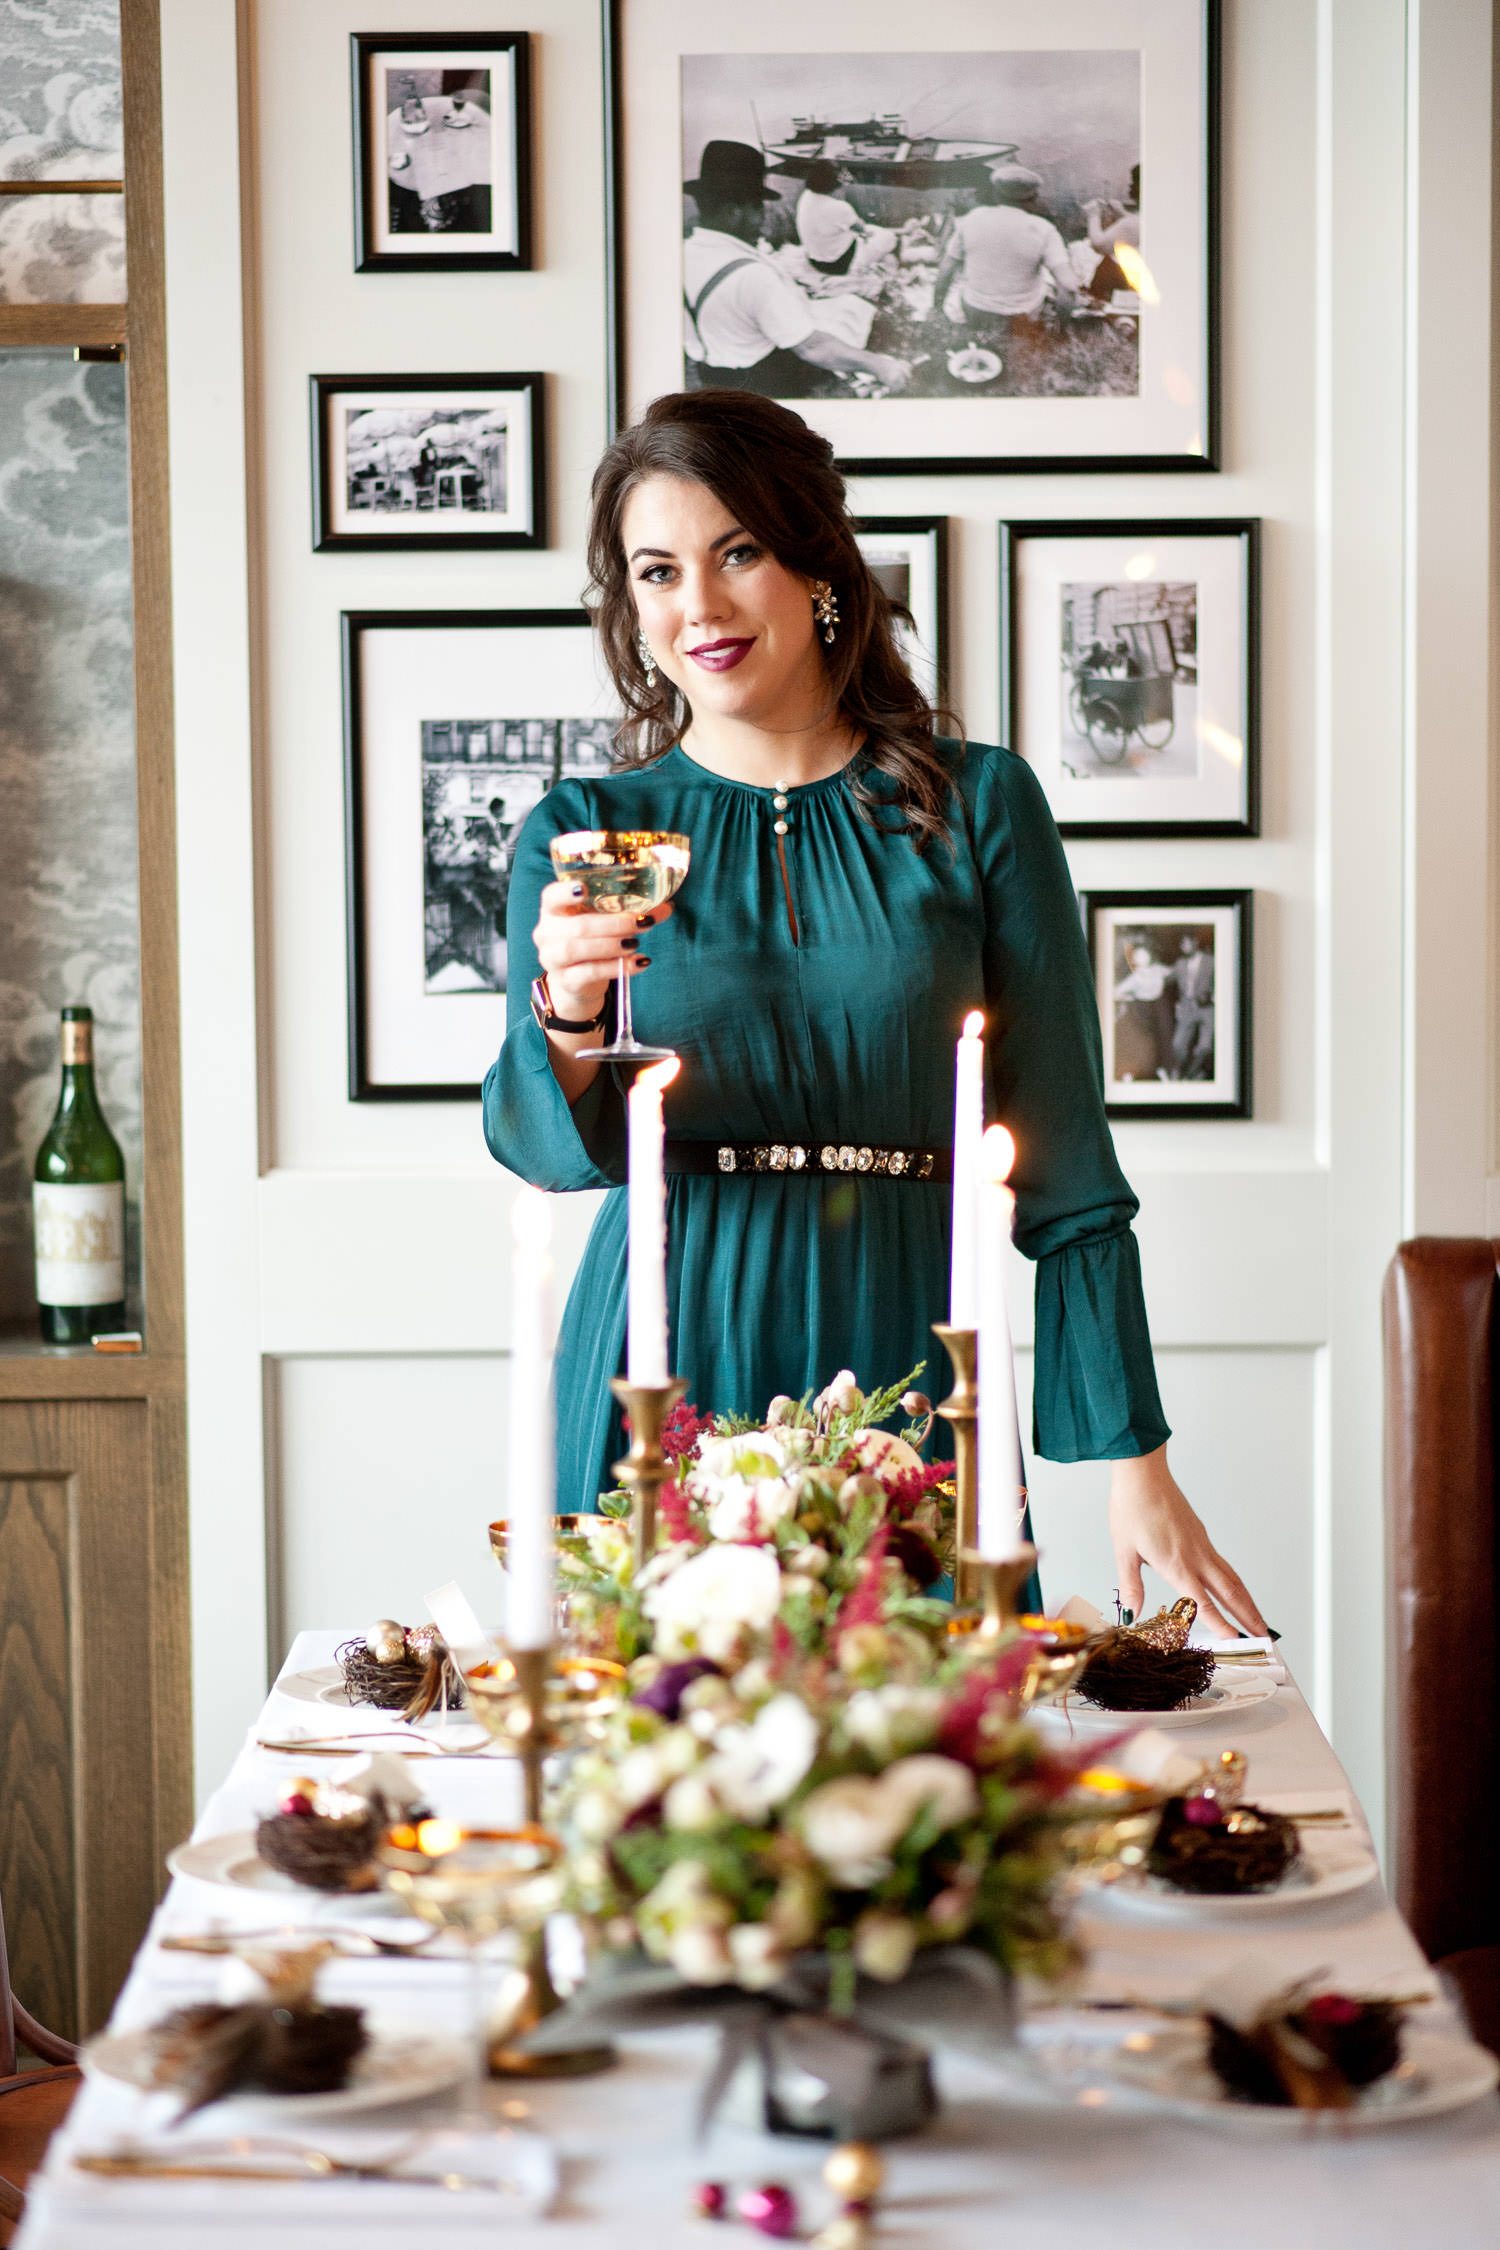 Hostess proposes a toast at a December wedding captured by Tara Whittaker Photography